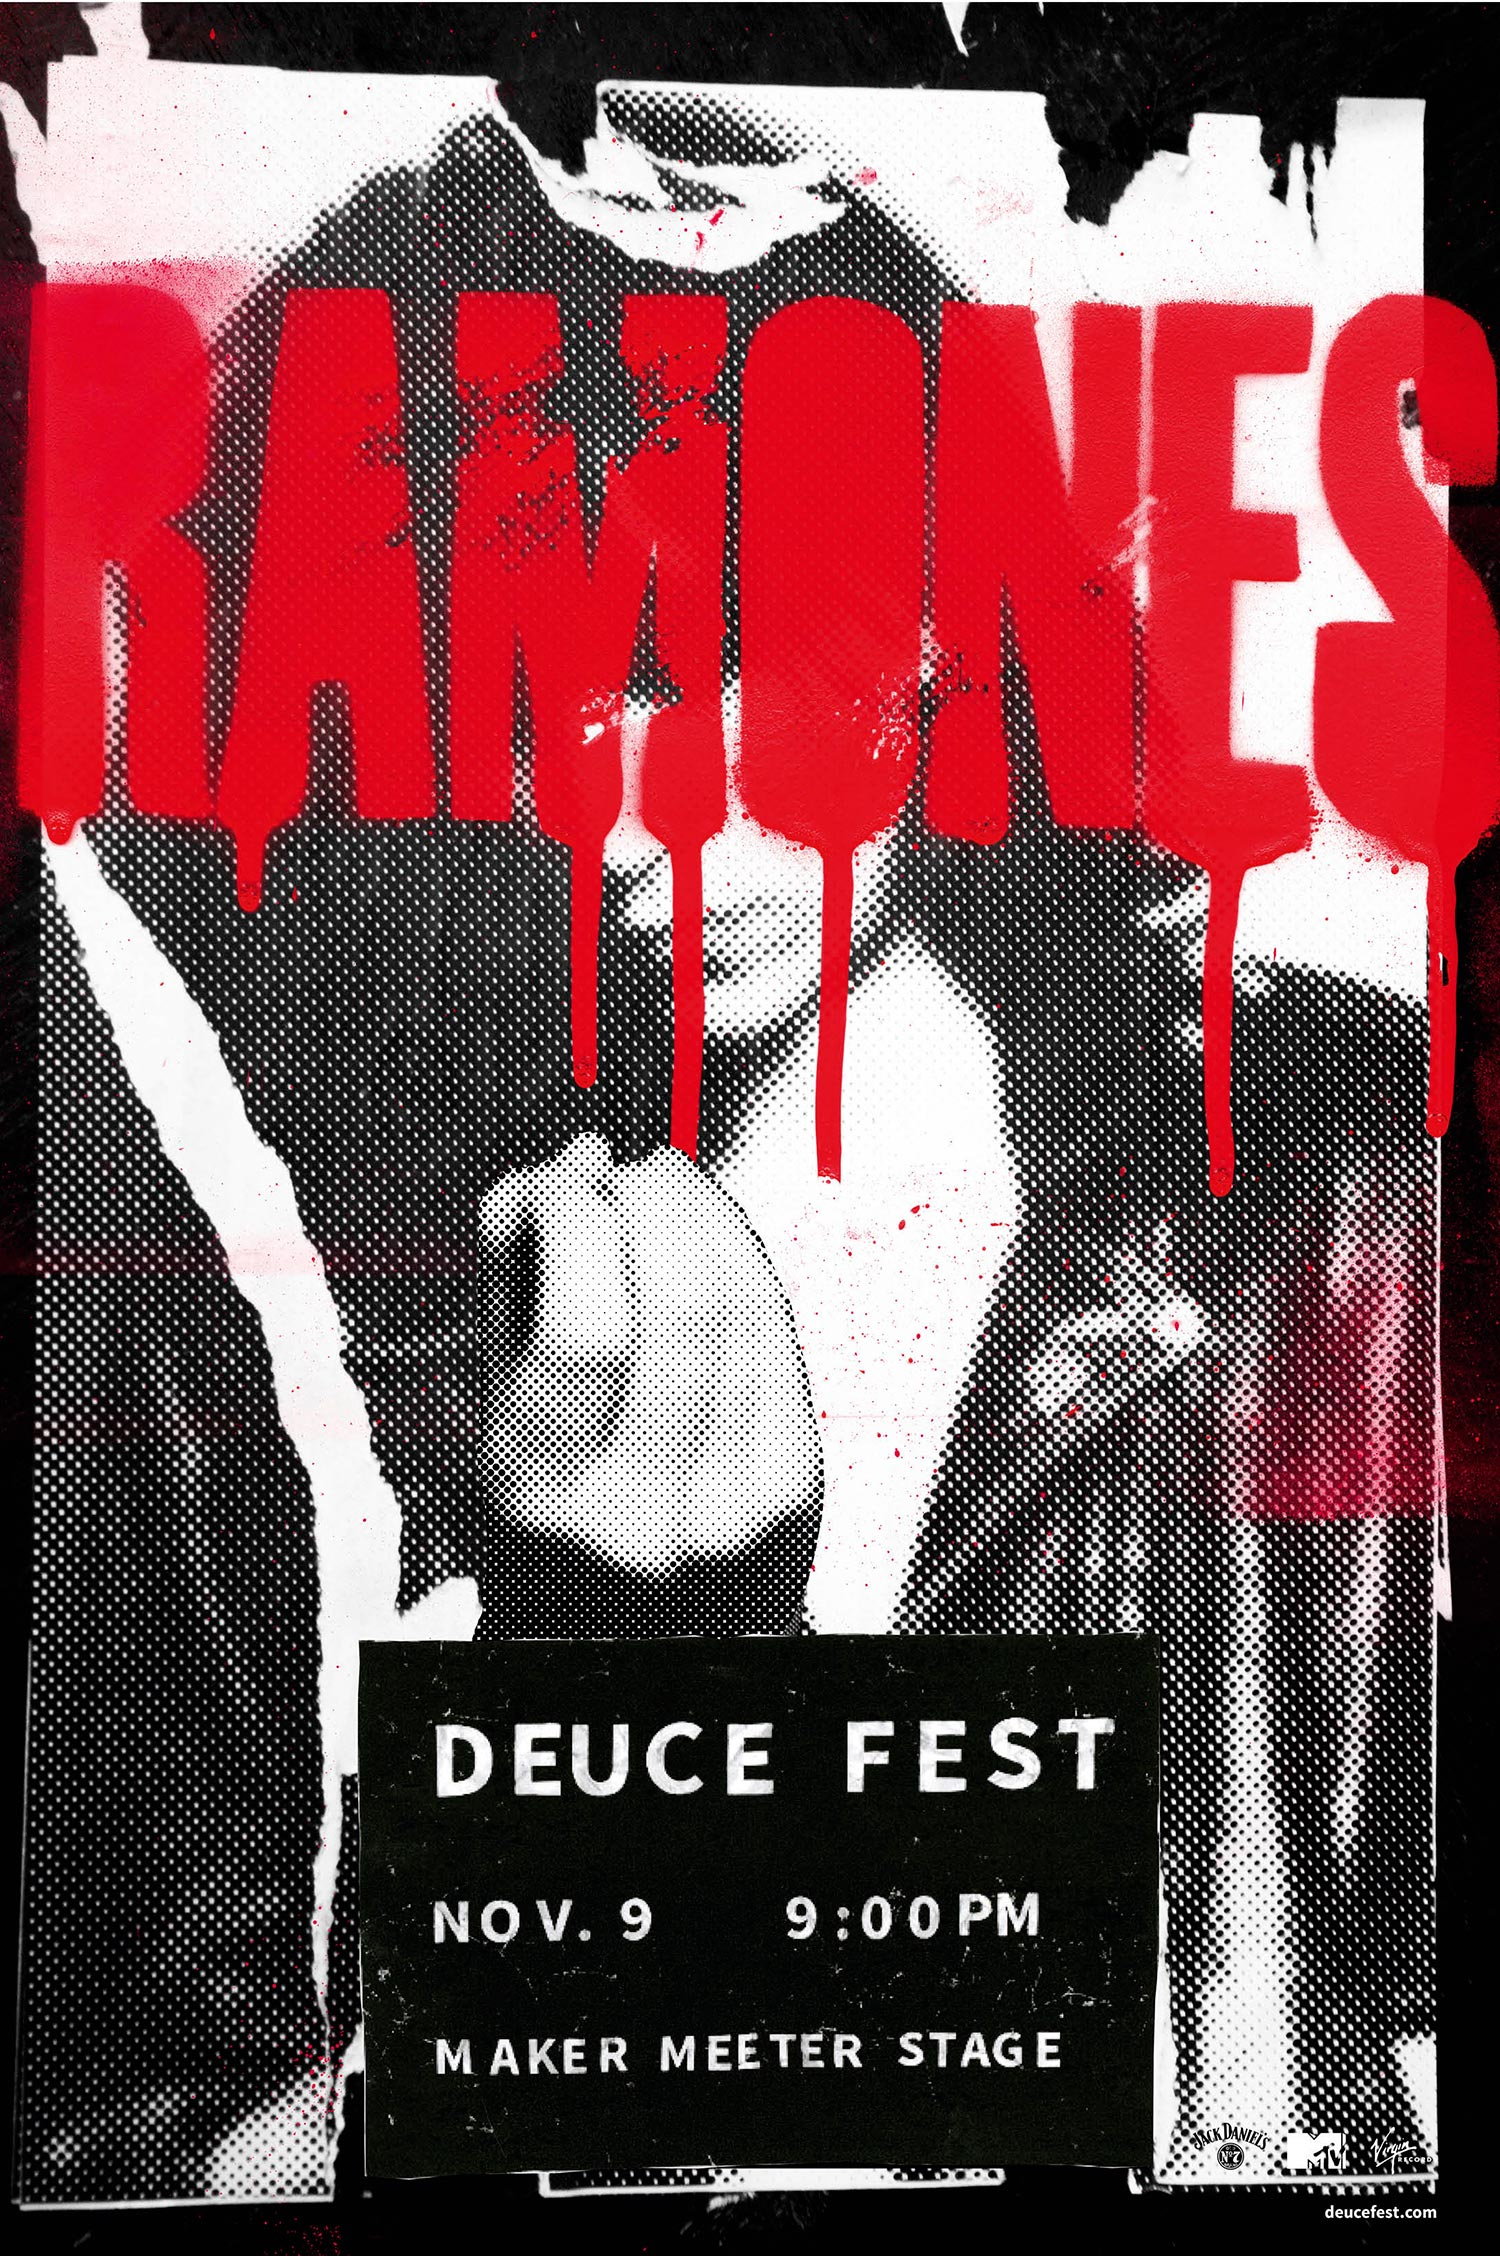 Ramones, Deuce Fest - illustrated poster by Rae Maher